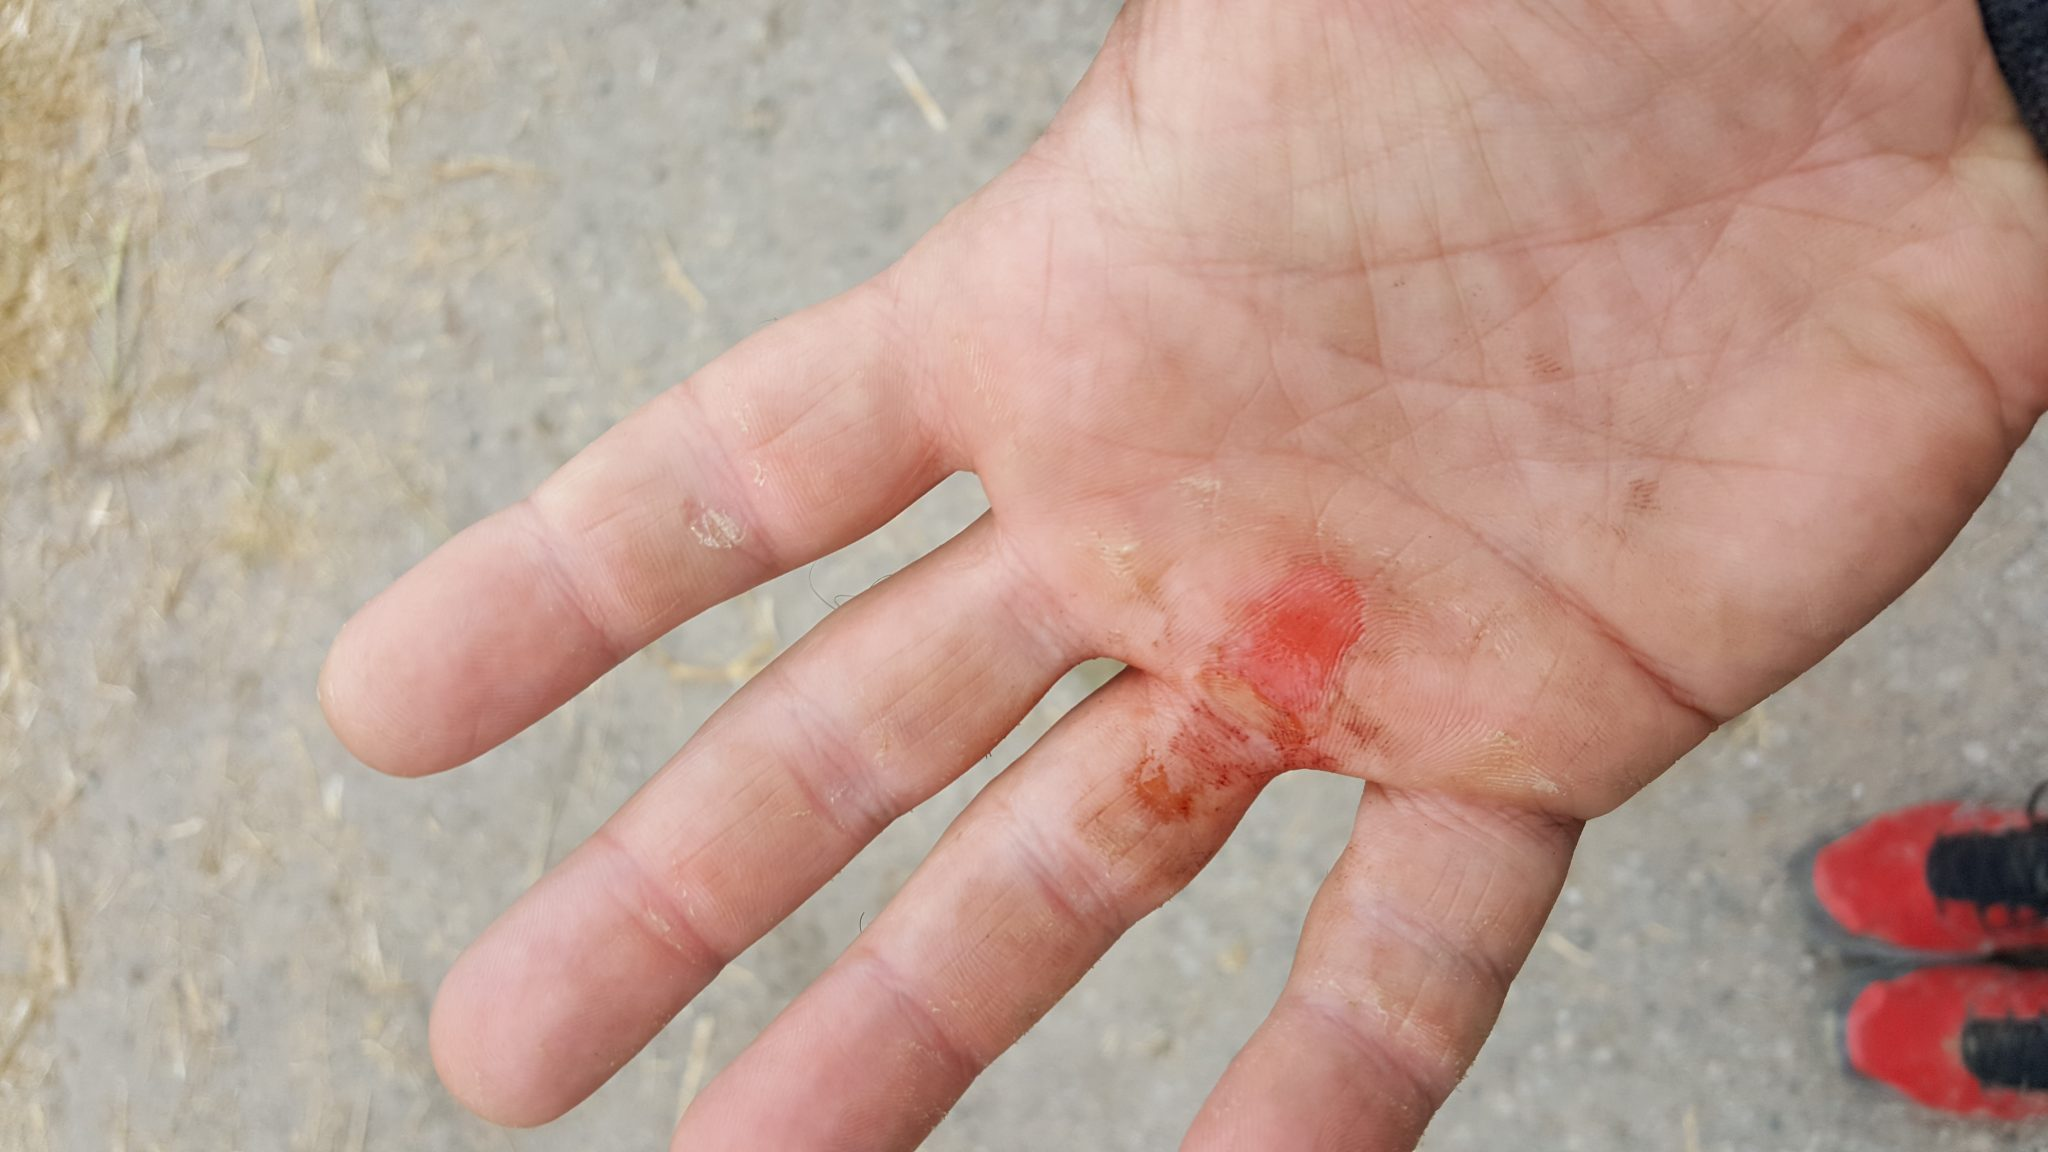 How to treat calluses